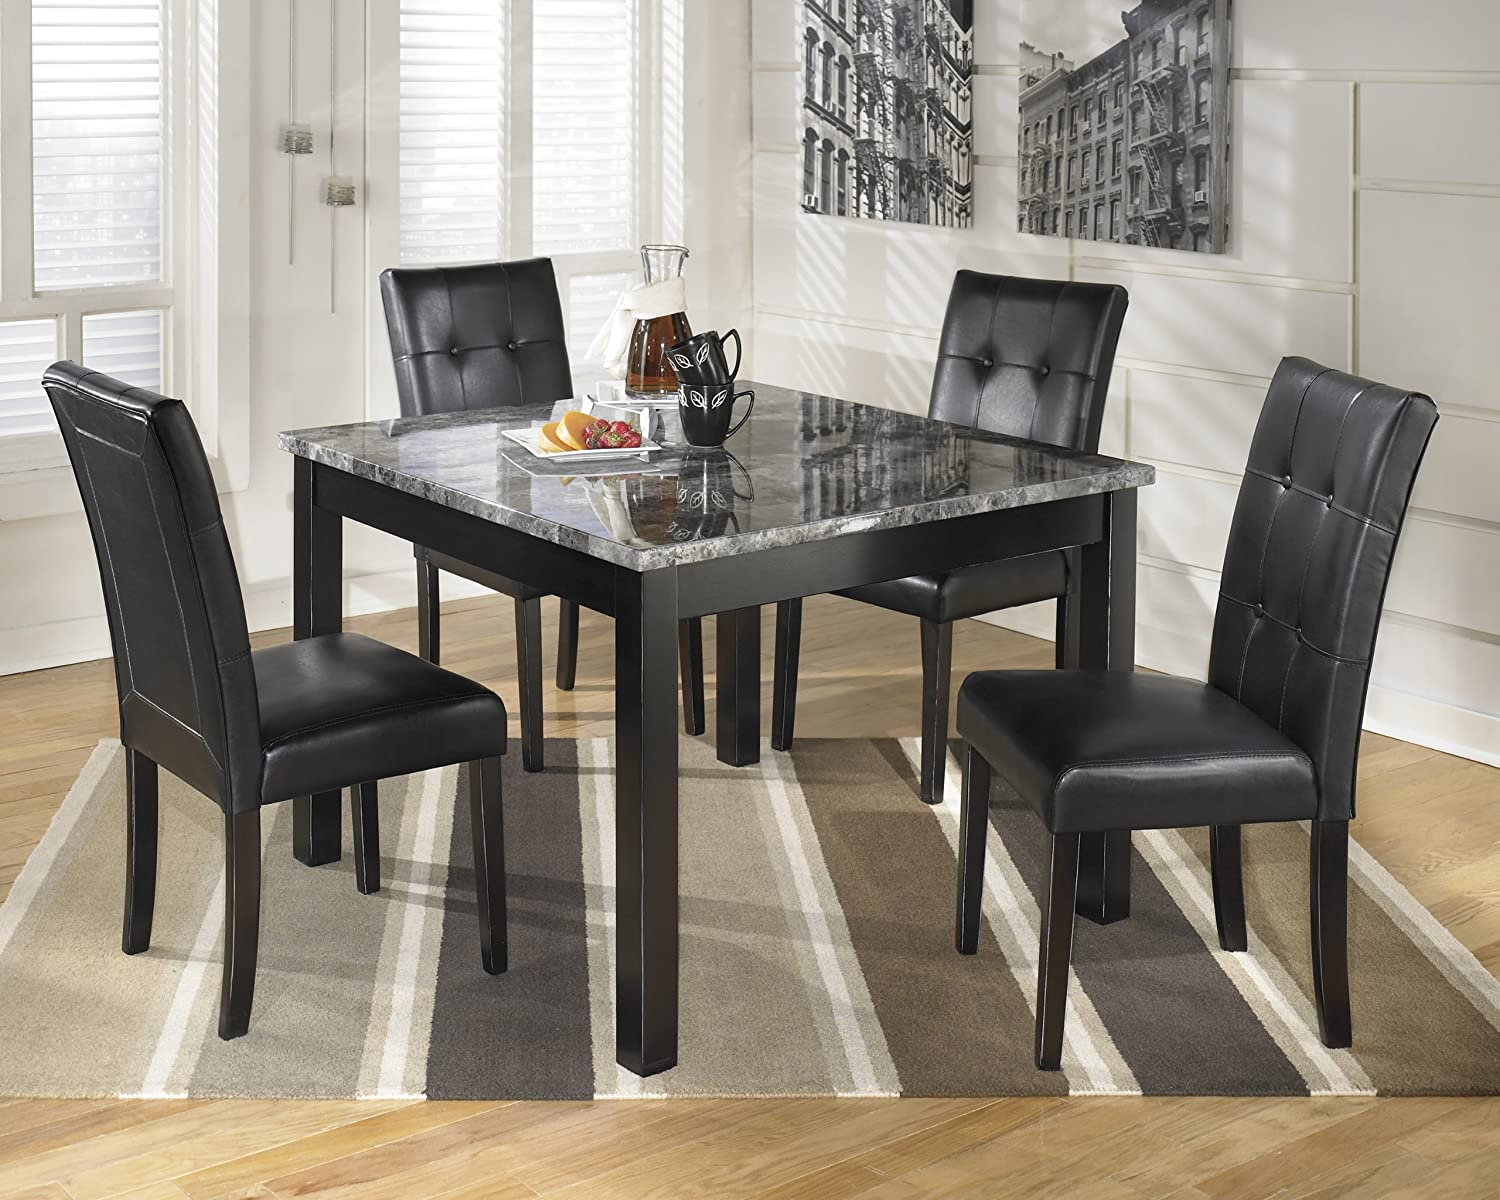 Amazon.com - Ashley D154-225 Maysville Black Square Dining Room ...